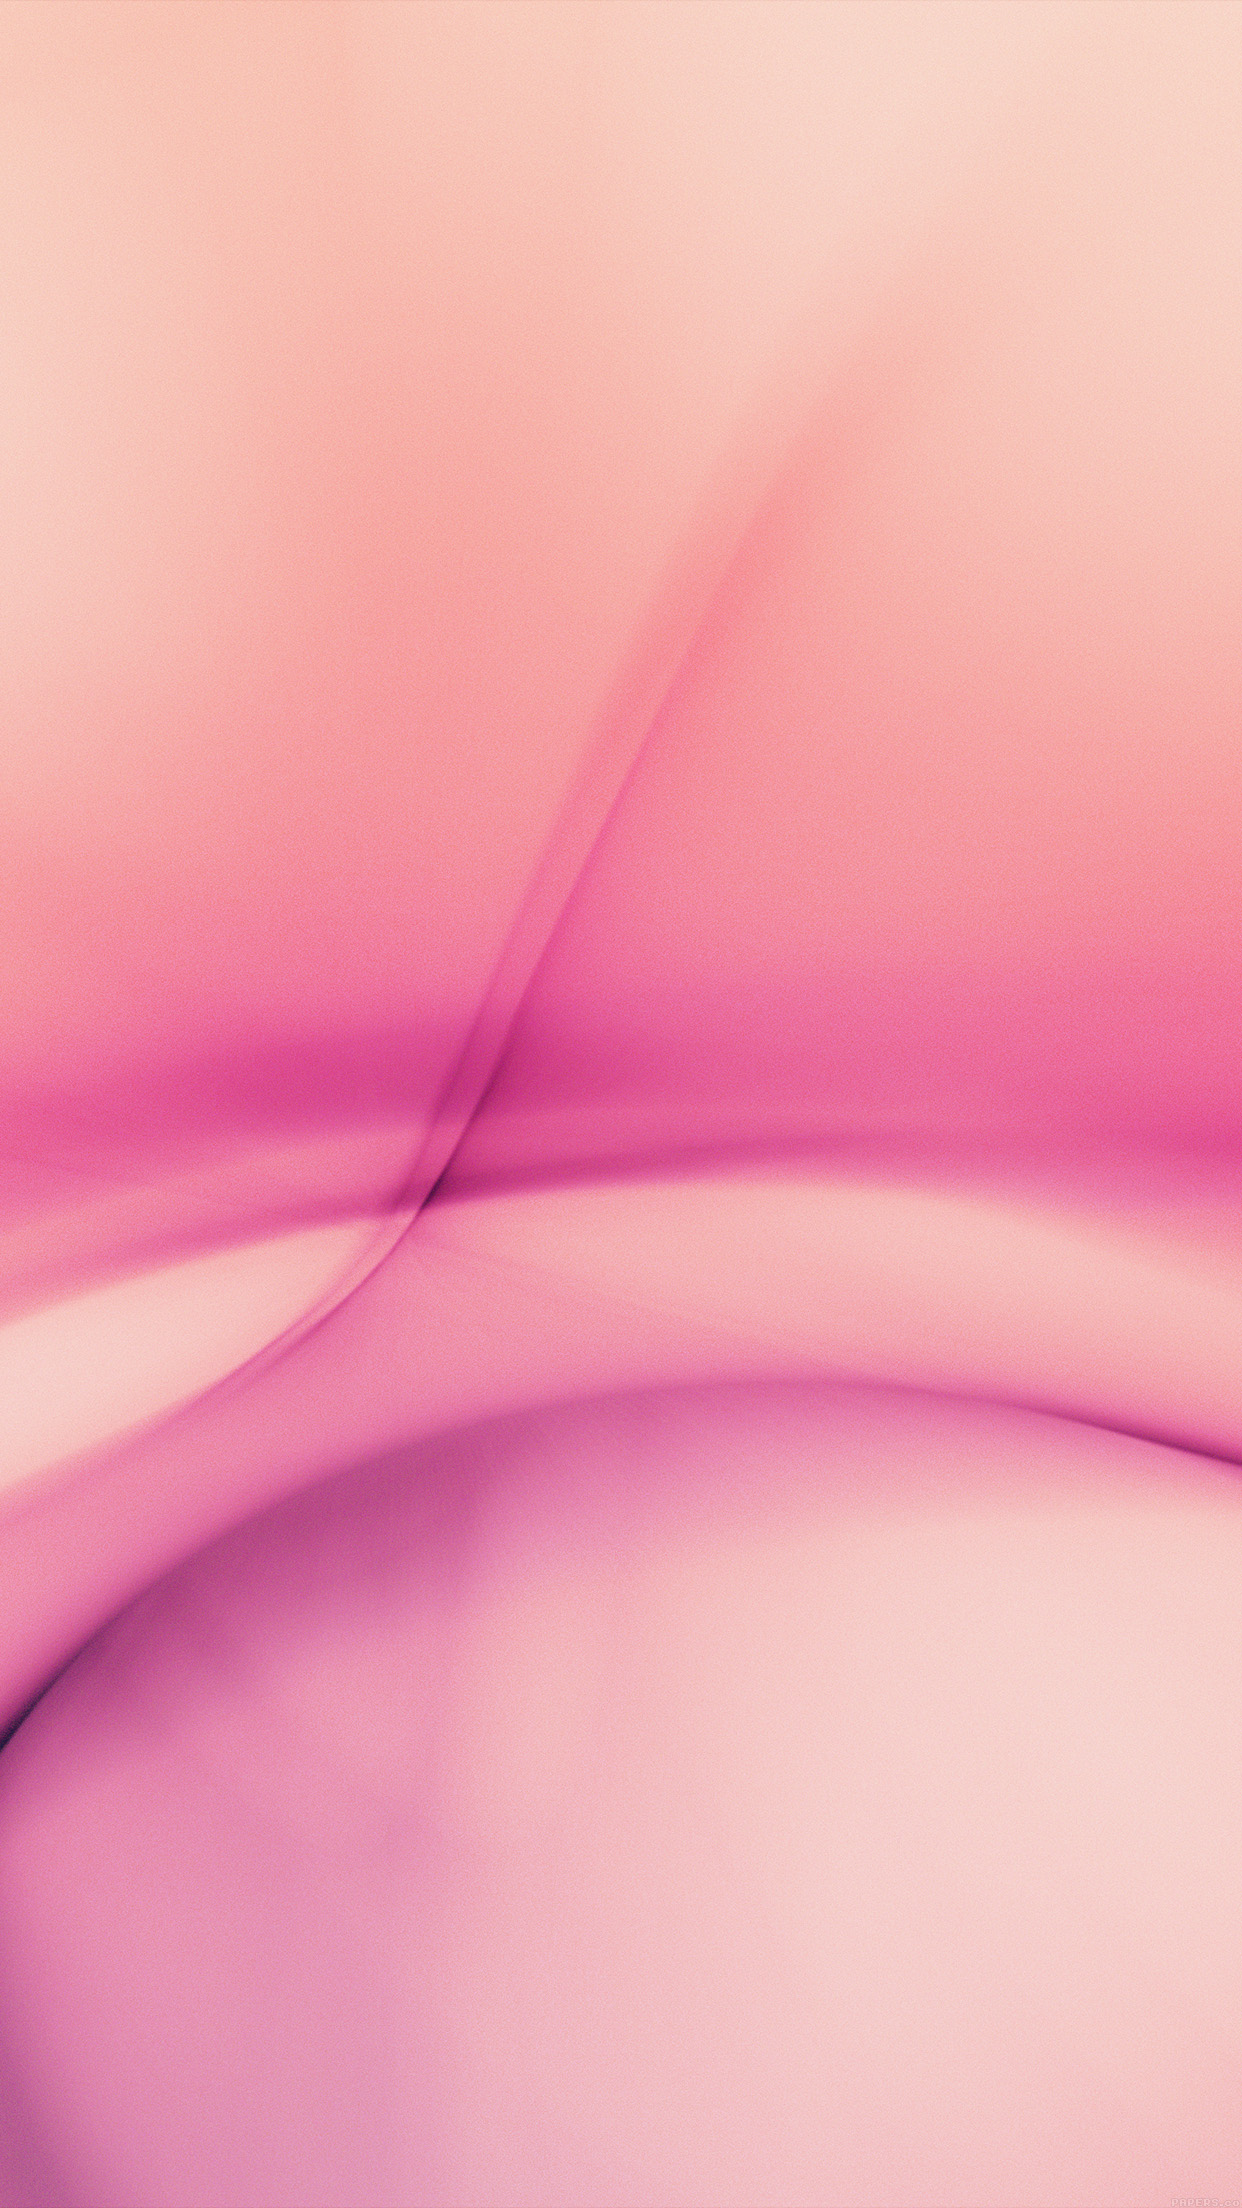 Ribbon Abstract Art Pink Pattern Android wallpaper